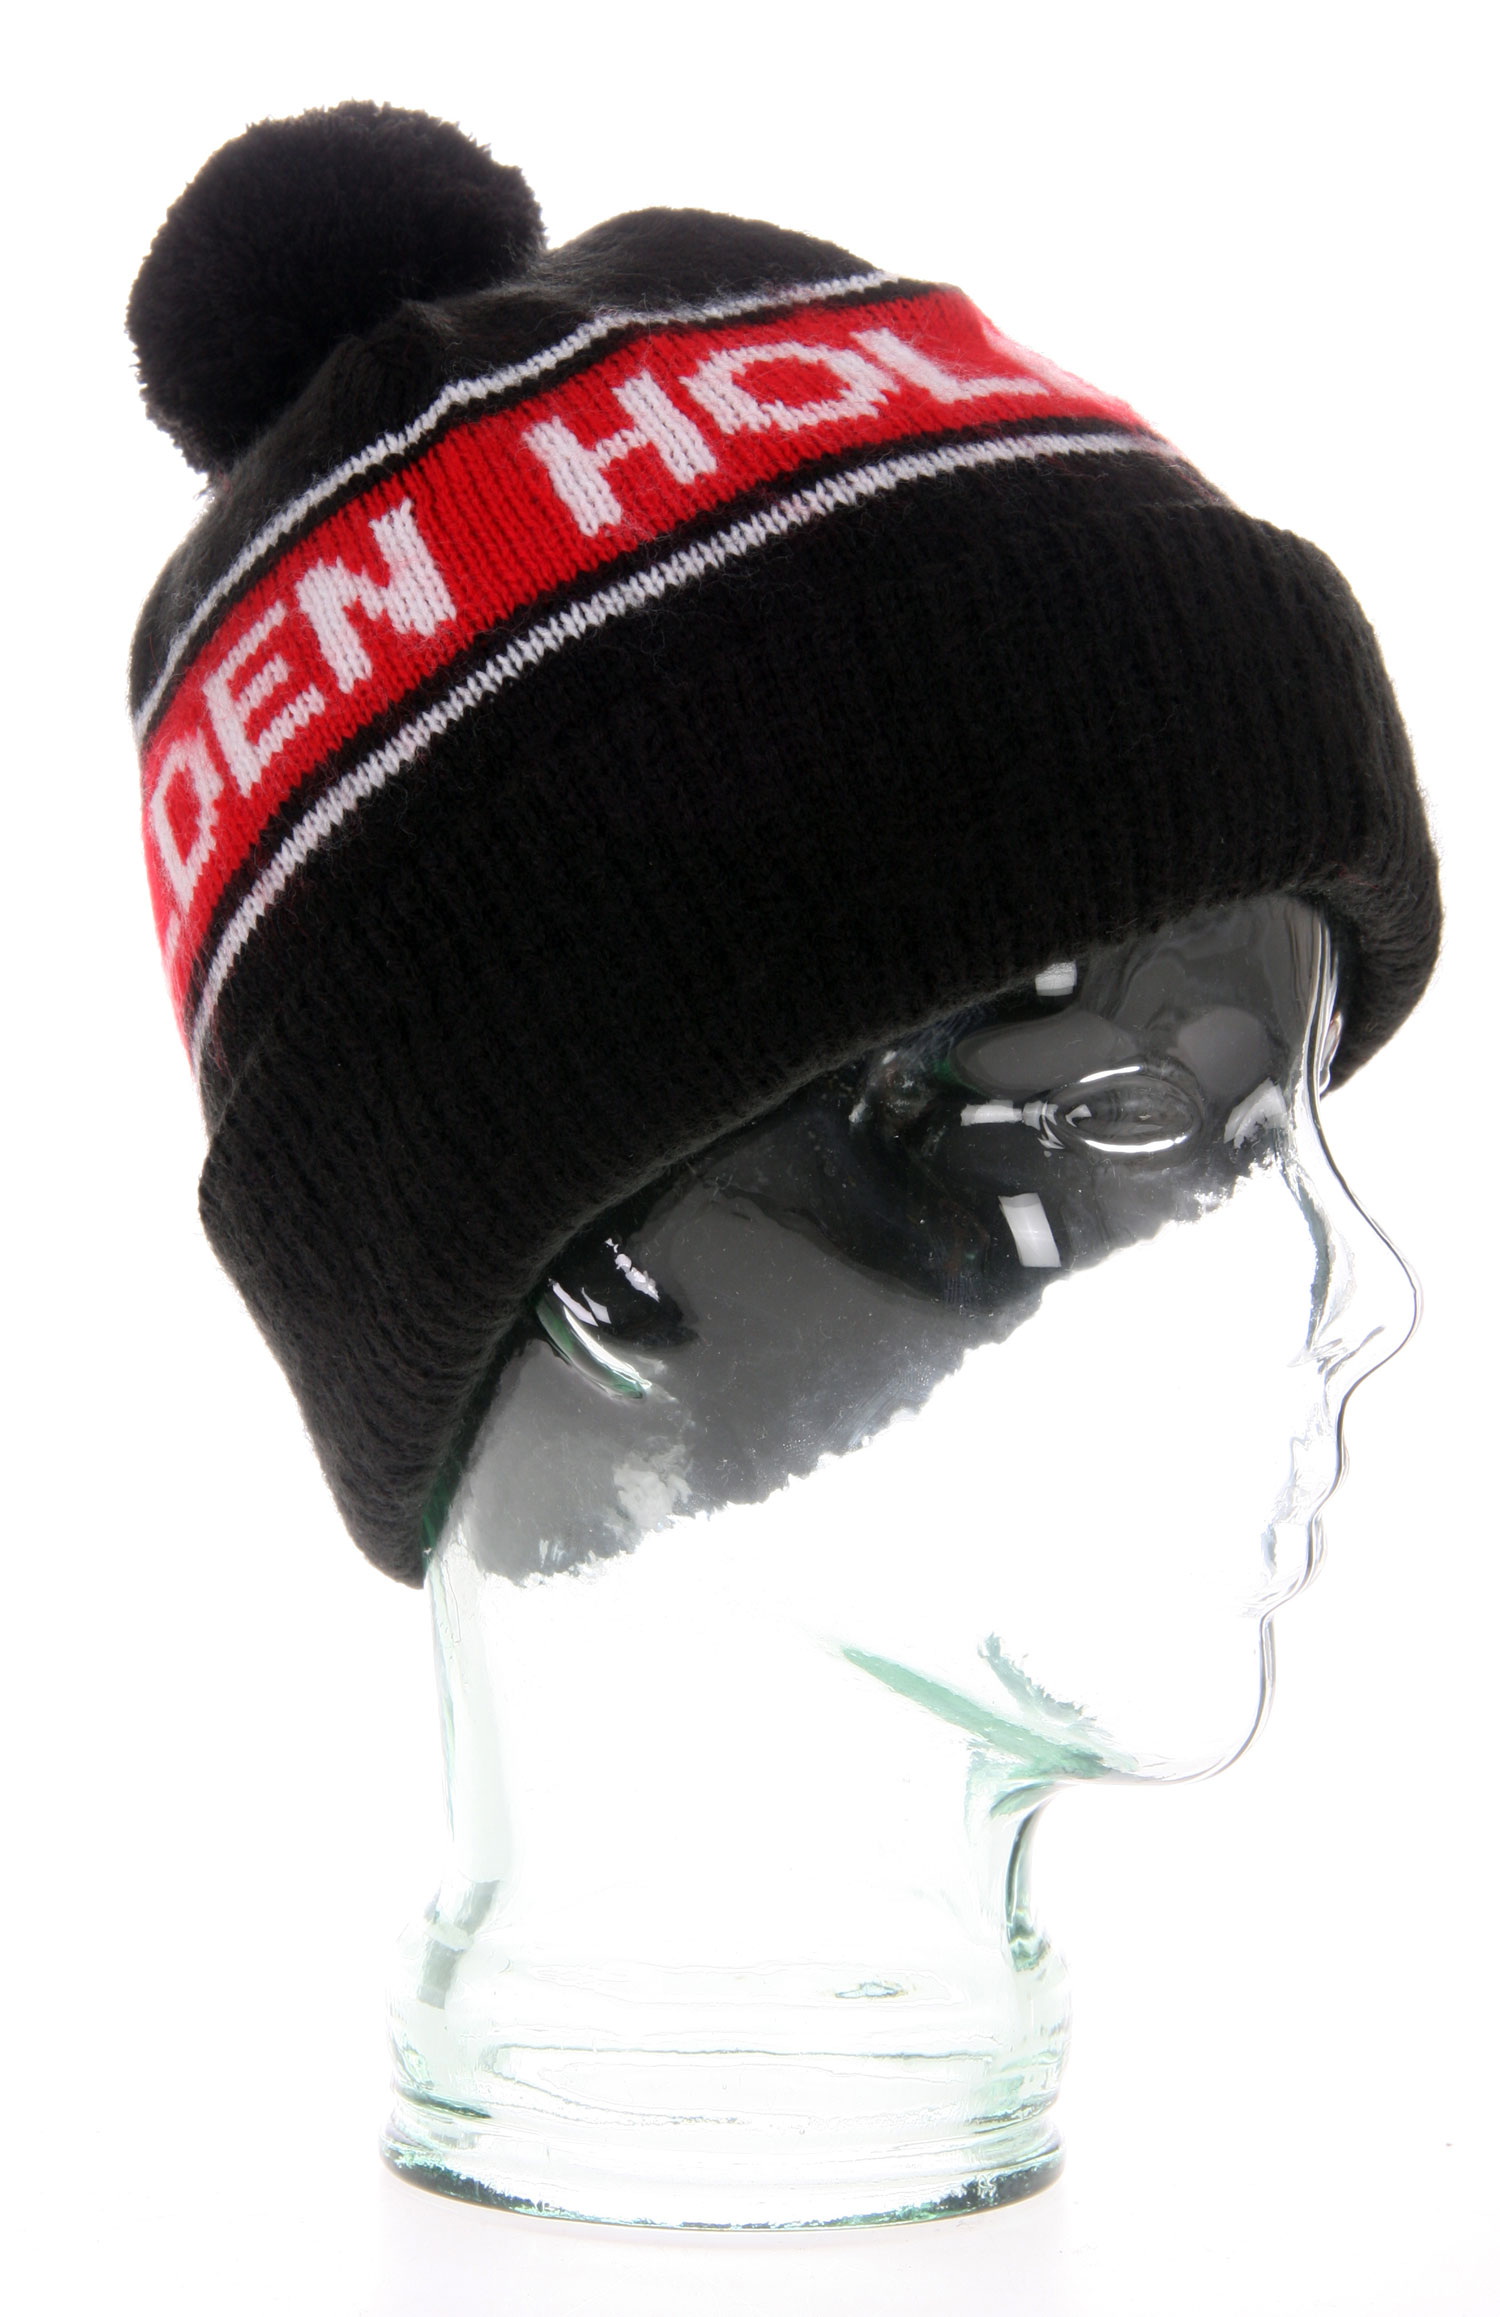 Join the talented Holden crew and show your solidarity by sporting the beanie that bears its name. You'll appreciate the superior softness that results from the subtly distressed rib knit acrylic in the Holden Teamster Beanie. Topped with a jaunty pom-pom, this cool cap boasts the Holden name knit around its circumference. The company originated by a snowboarder and dedicated to continuing to revolutionize sports outerwear is also the outfitter of an enviable list of talent. Be a part of that dream team in the Teamster beanie.Key Features of the Holden Teamster Beanie: Subtle distressing for soft feel 100% Acrylic - $17.95